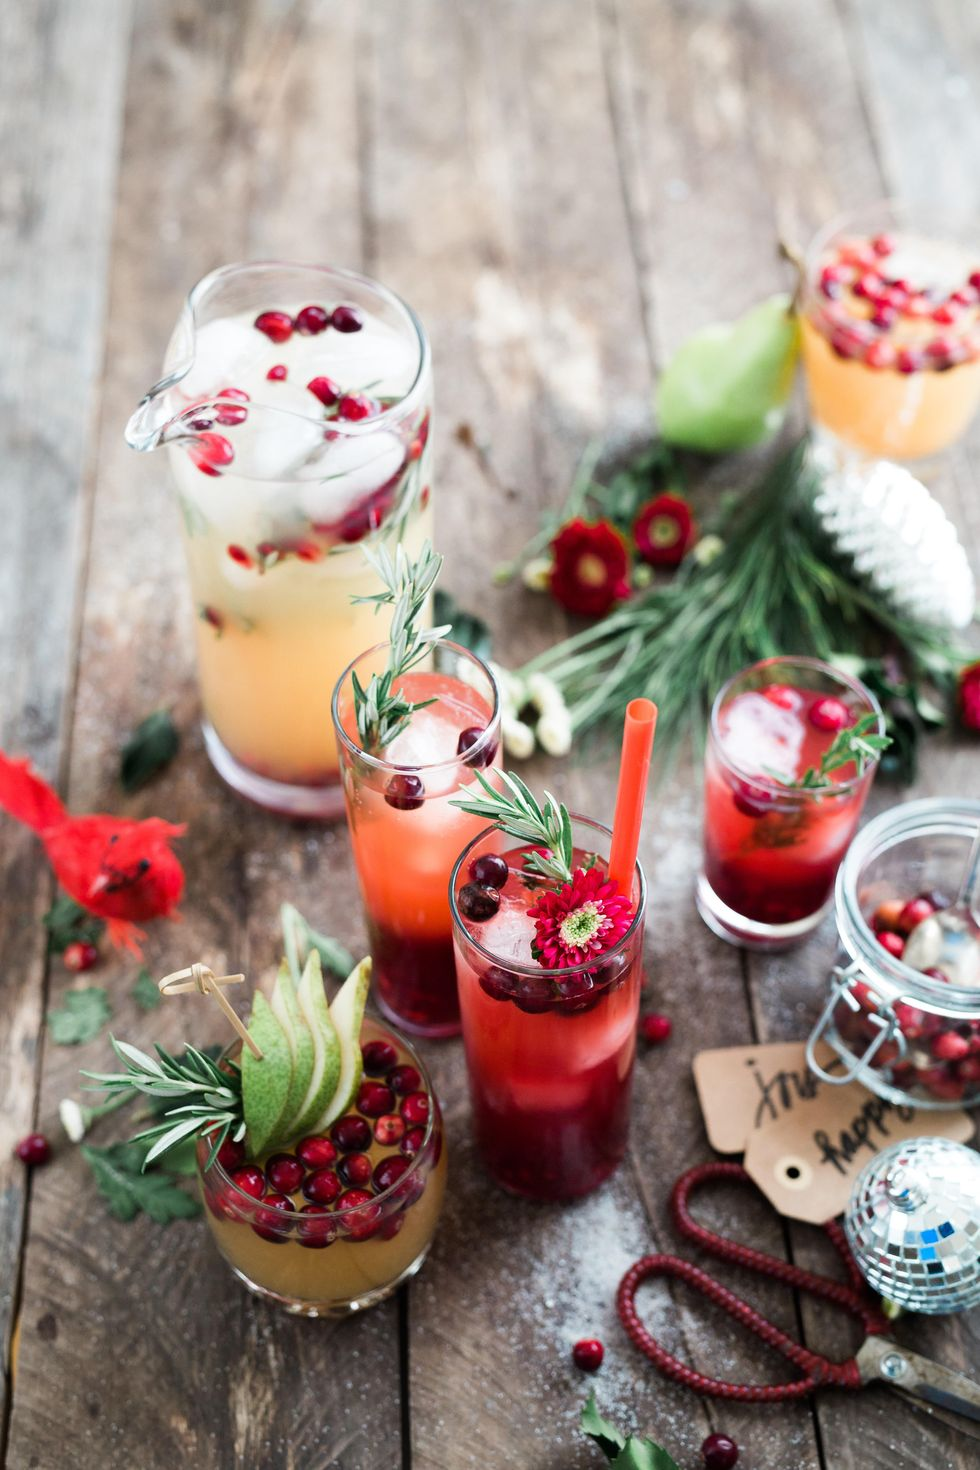 Alcoholic and Non-alcoholic Drinks You Need To Try This Holiday Season